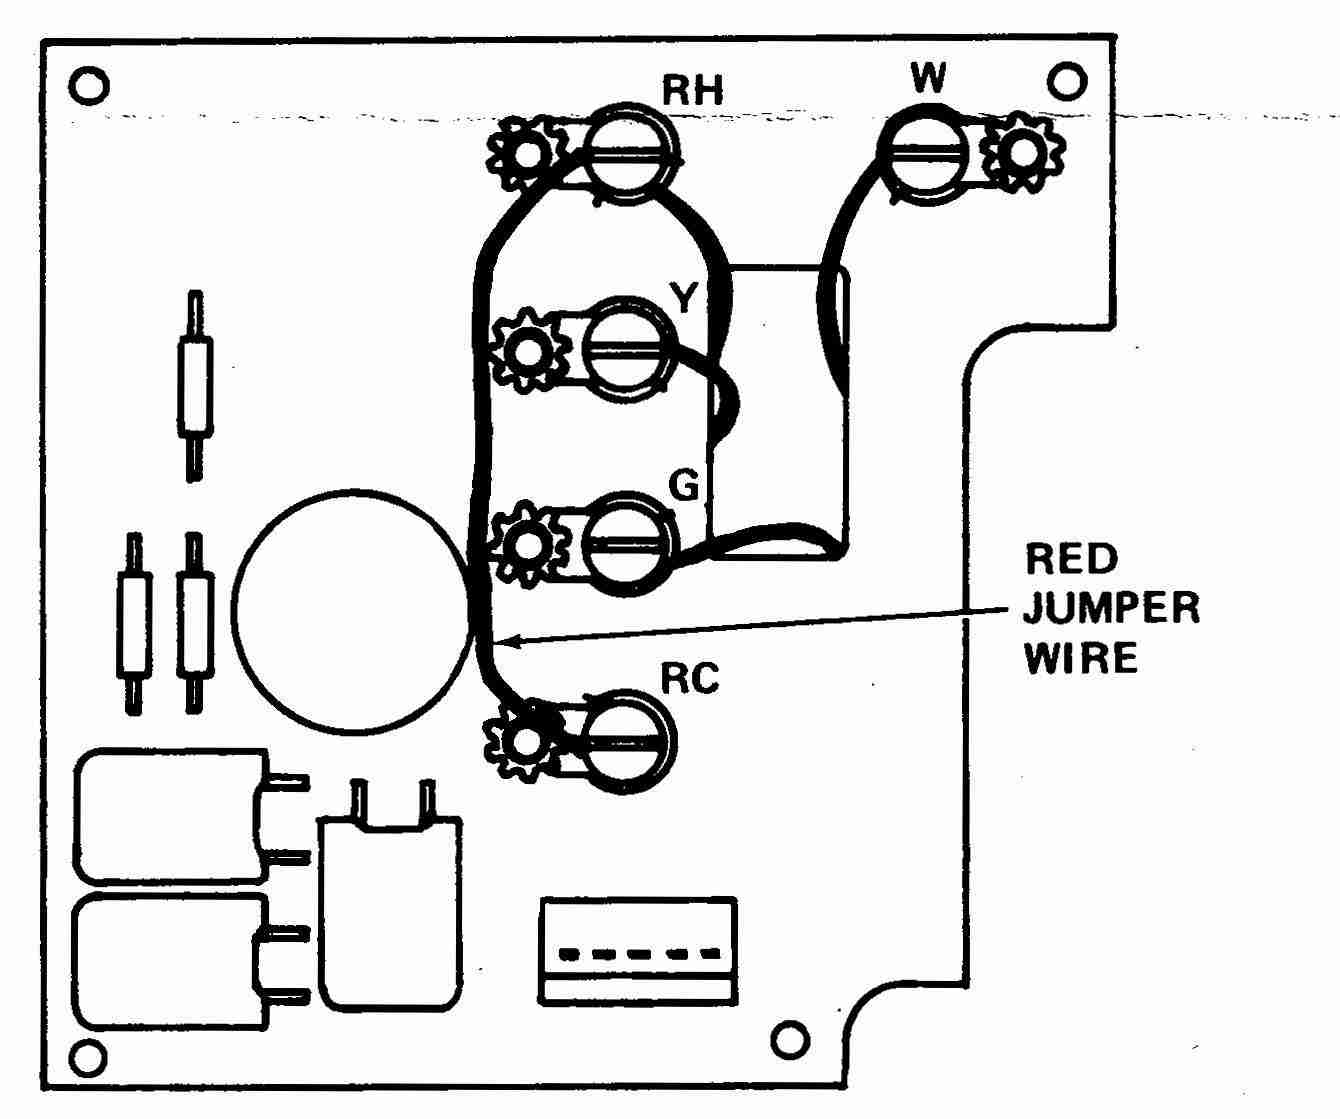 5 wire thermostat diagram 1997 ford f150 starter solenoid wiring room diagrams for hvac systems